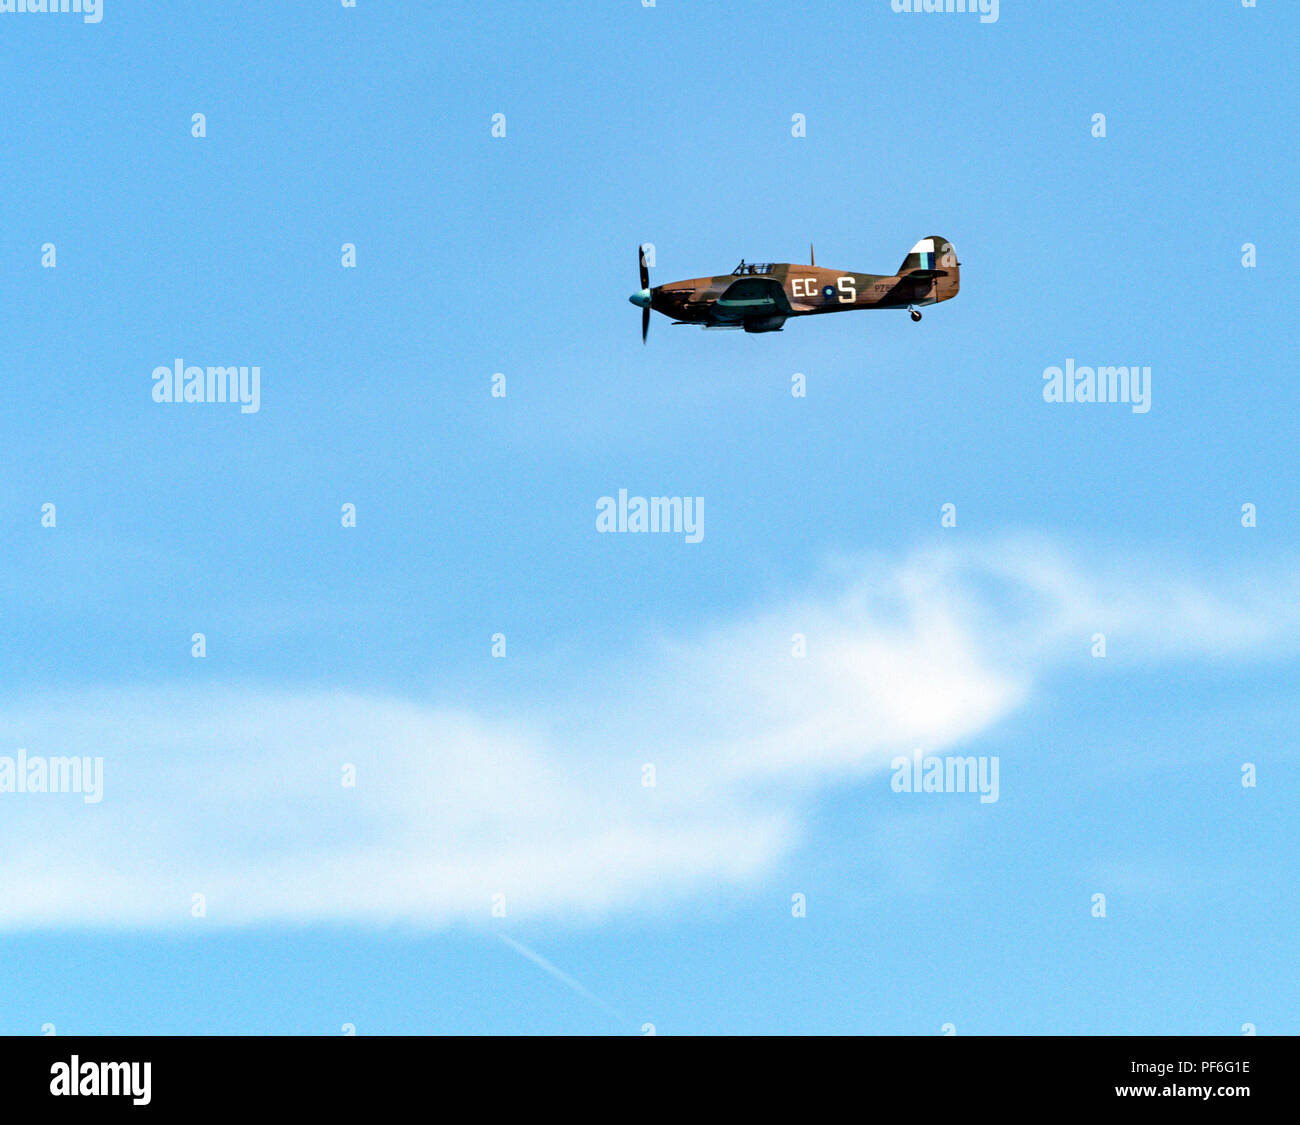 Hurricane fighter of the Battle of Britain Memorial Flight, Eastbourne Airshow 2018 - Stock Image